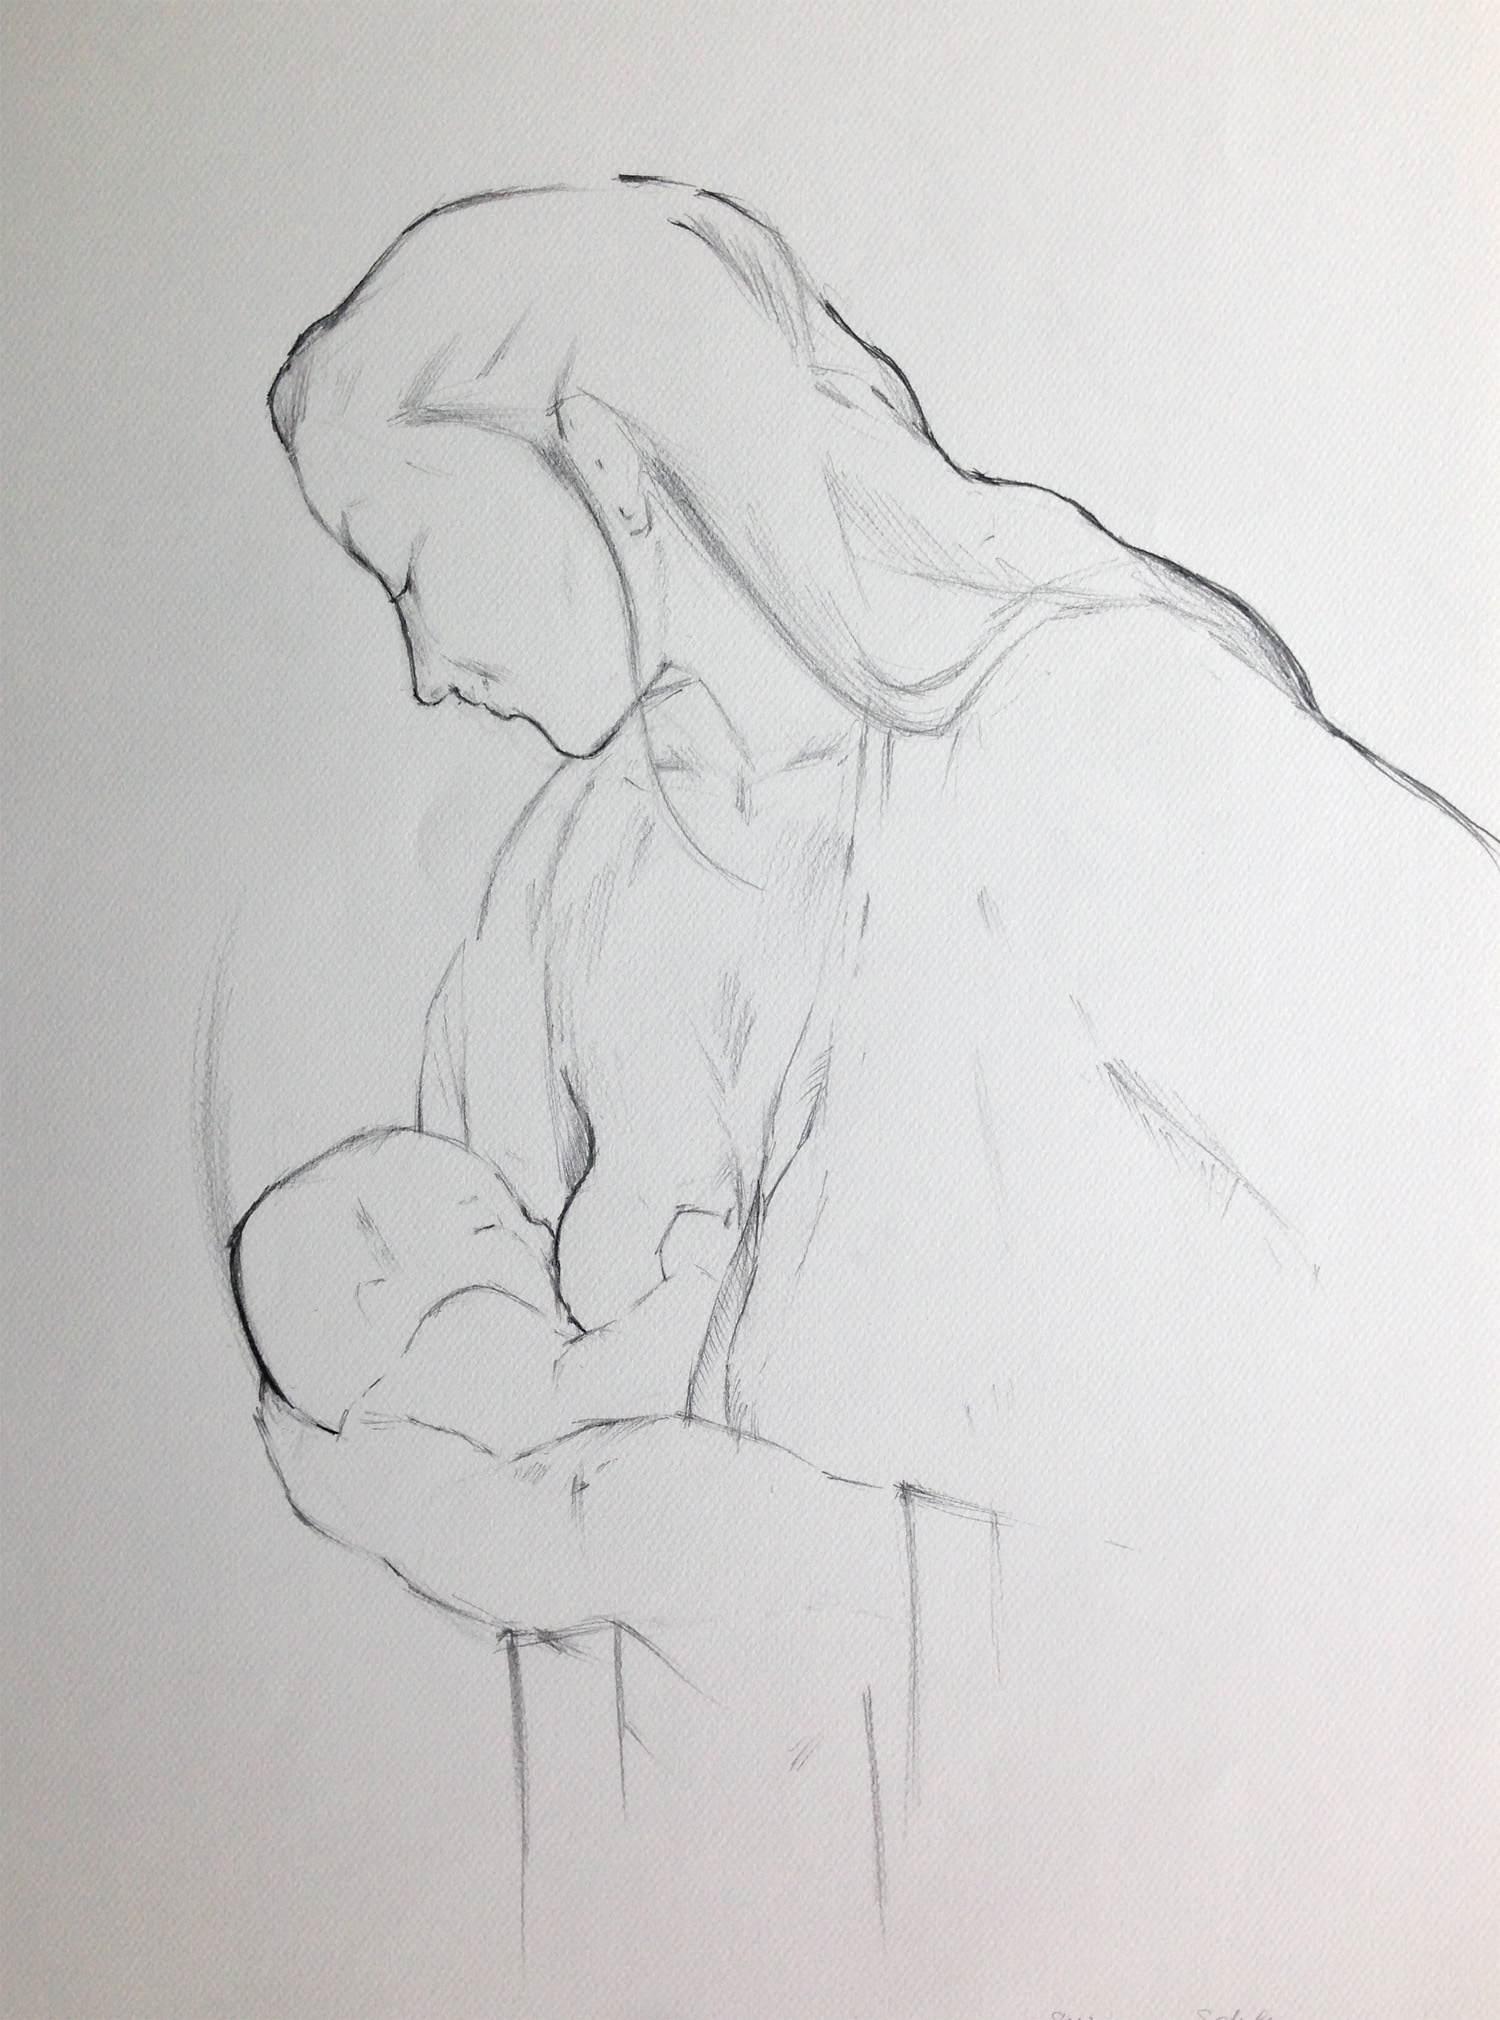 Motherhood I - commissioned by an obstetrics clinic